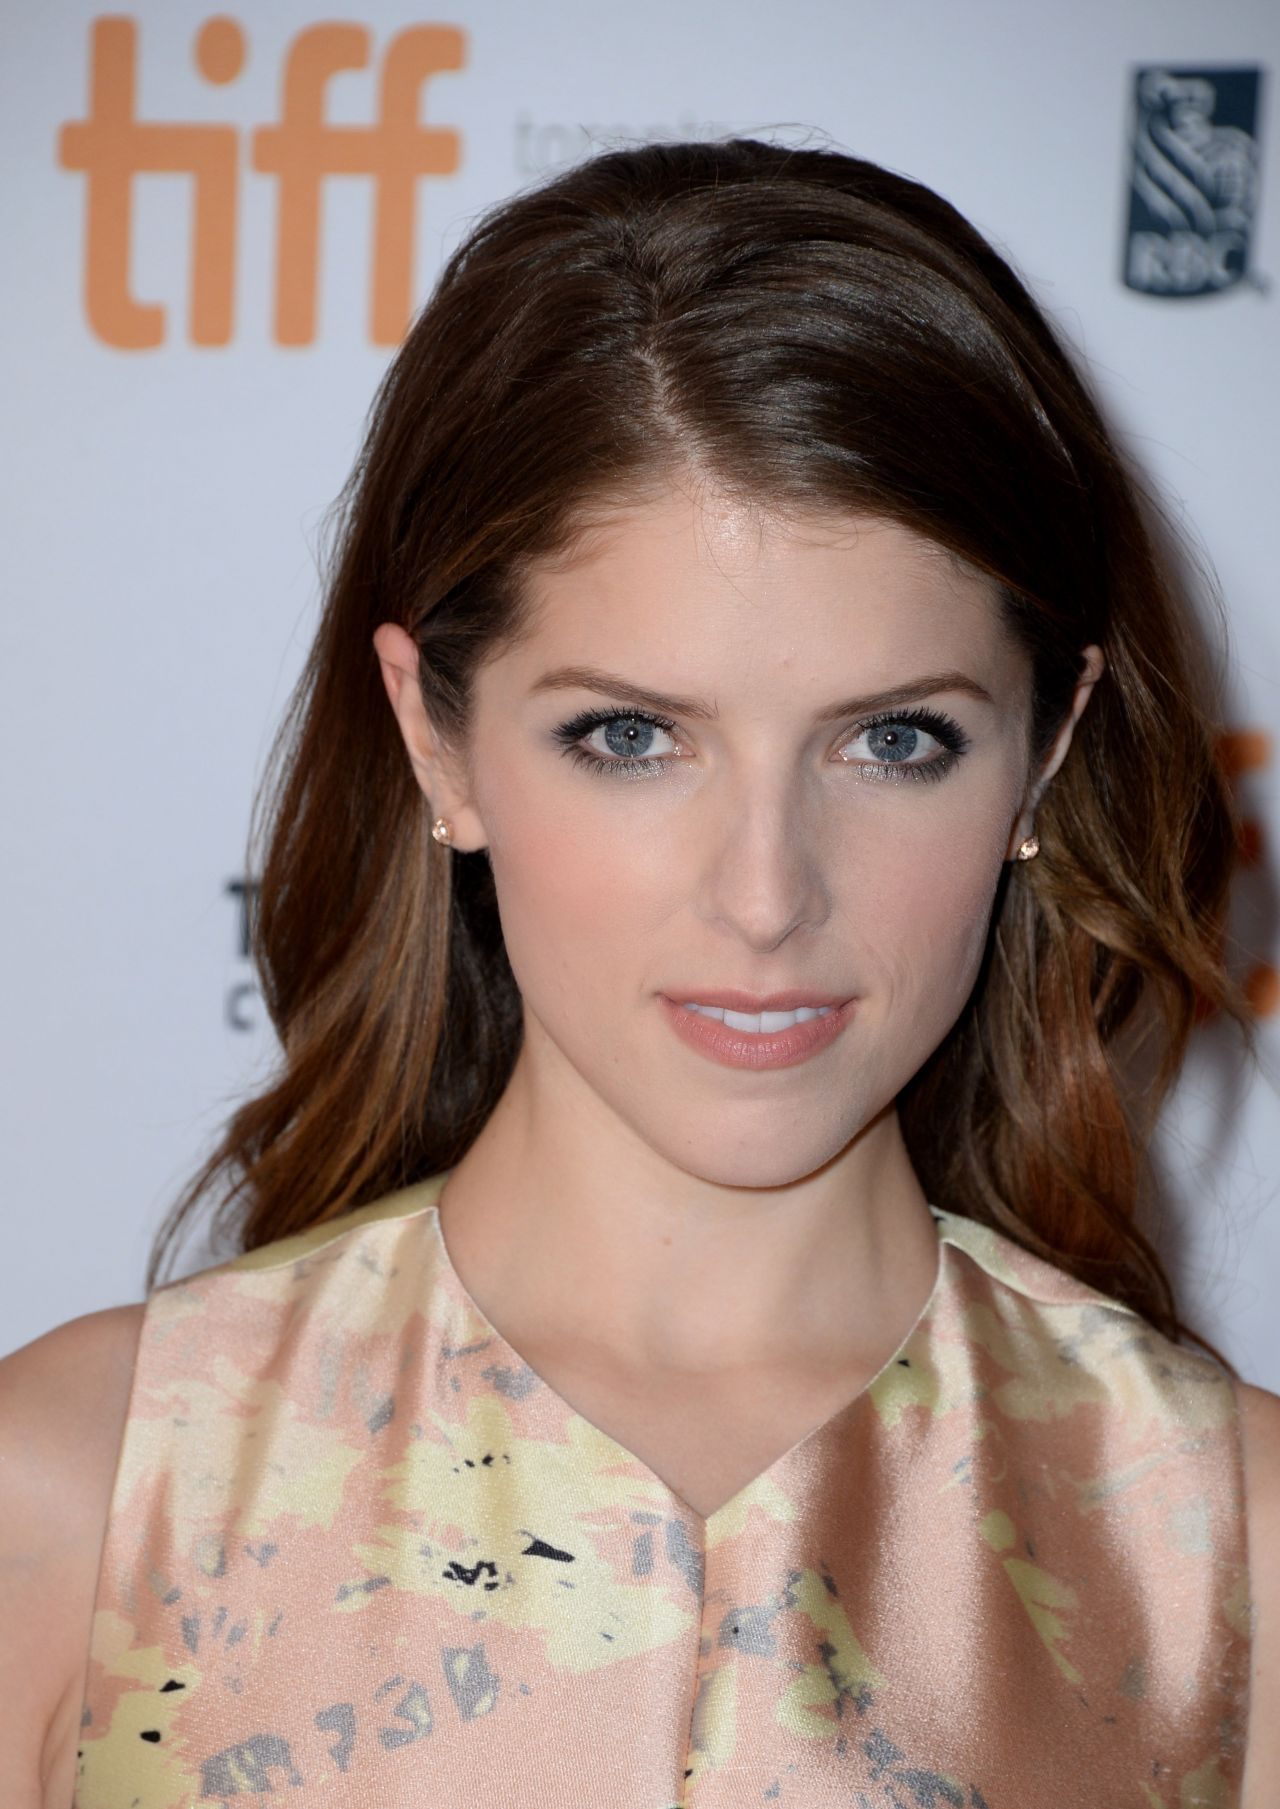 ... Anna Kendrick -'Cake' Set Photos – April 2014 Anna Kendrick